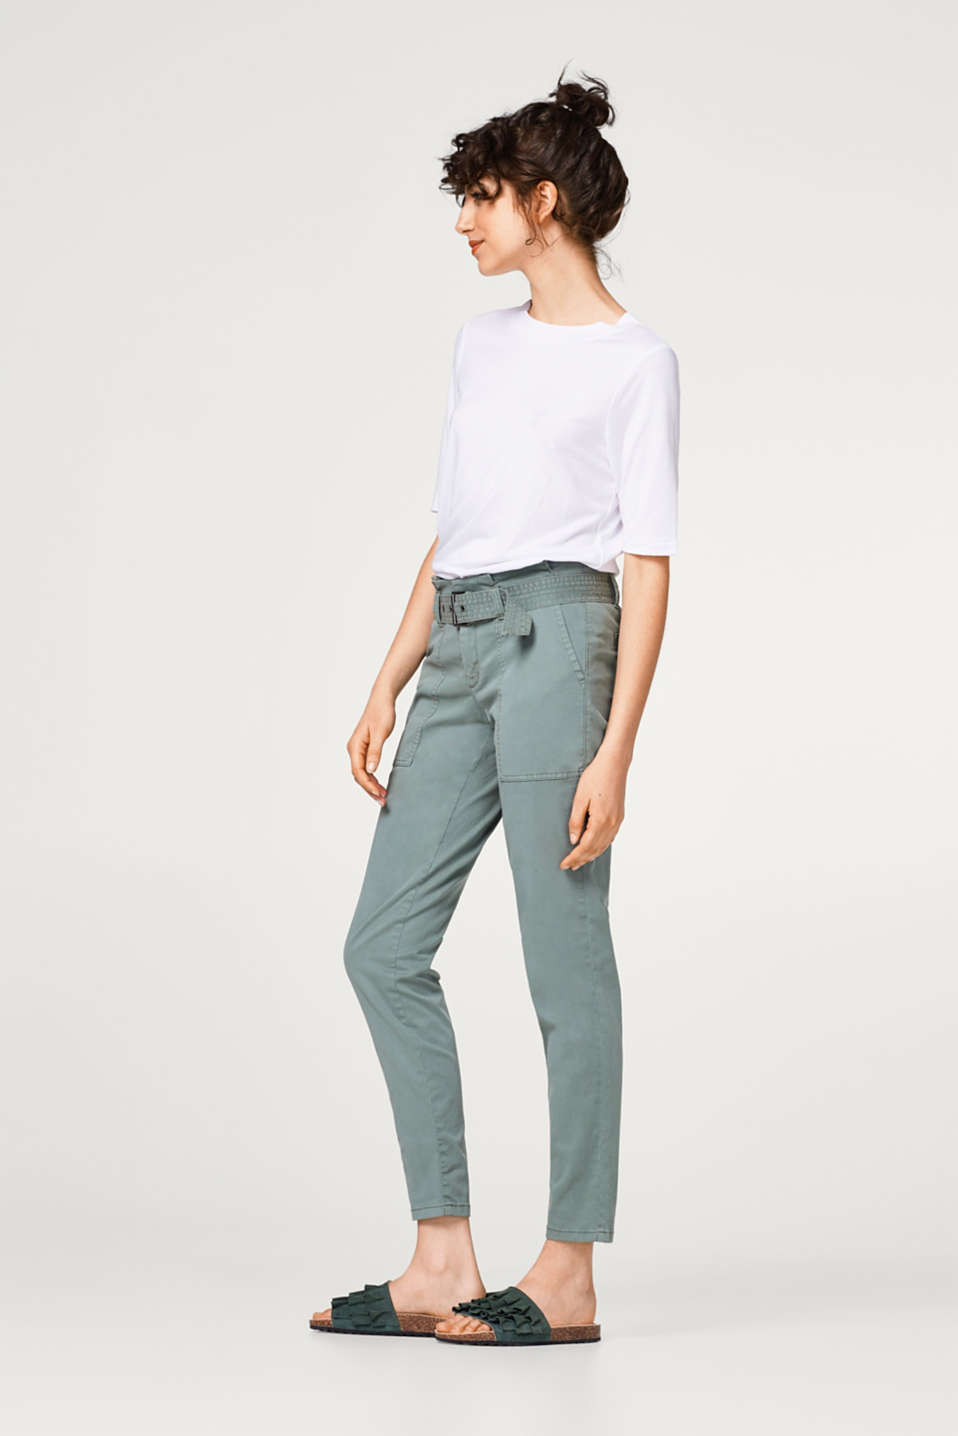 Soft paper bag trousers with a belt and added stretch for comfort